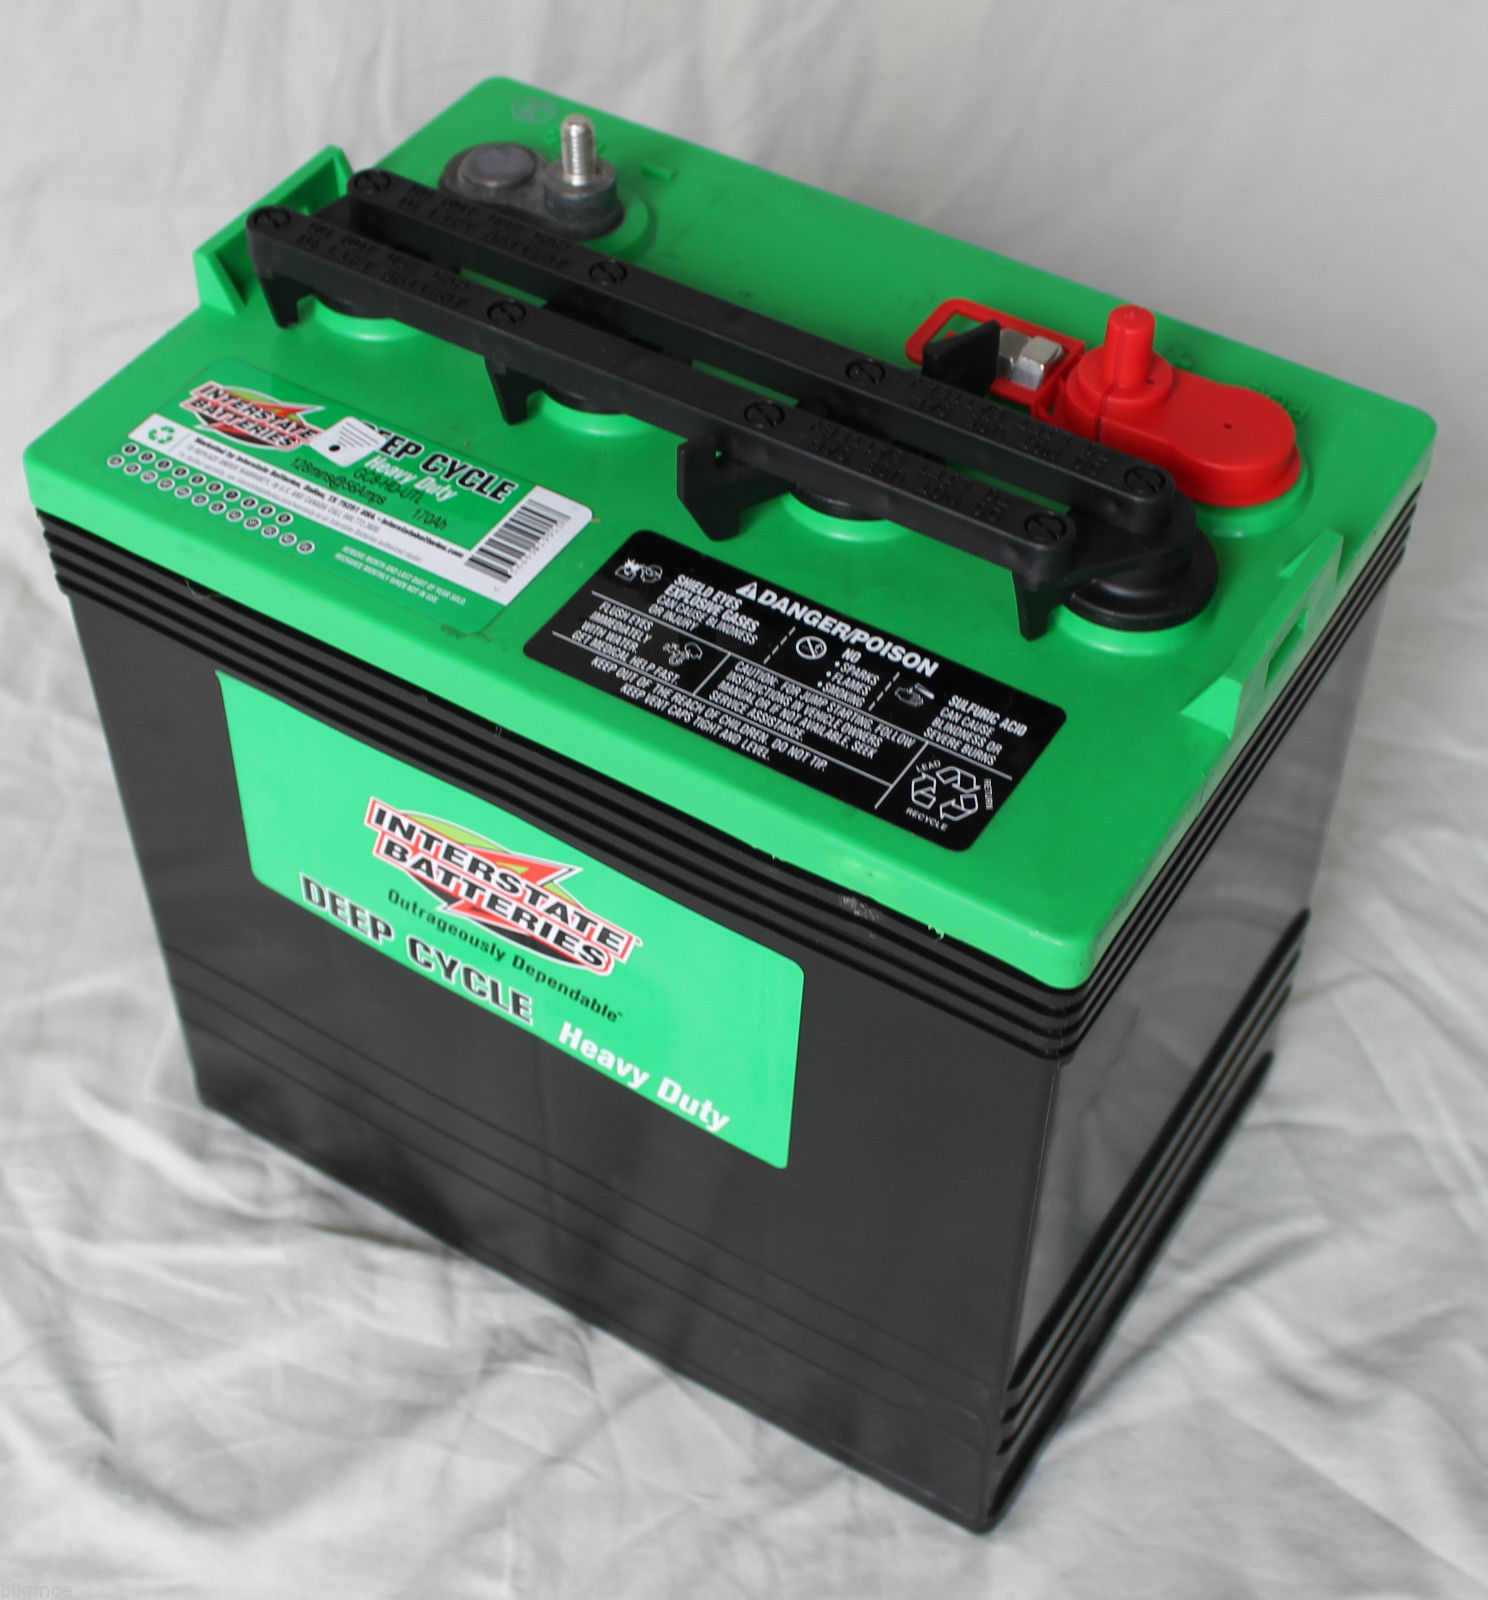 Interstate Batteries is the #1 Replacement battery in the country. We have automotive (New/Blemished/Used), Truck, RV, Marine, Commercial, Golf Cart, Motorcycle, Gel, Wheelchair, UPS, and more! Typically we have the battery available in stock. They come with a NATIONAL WARRANTY with dealers in every county in the United States. We have a professional staff that can assist you with .